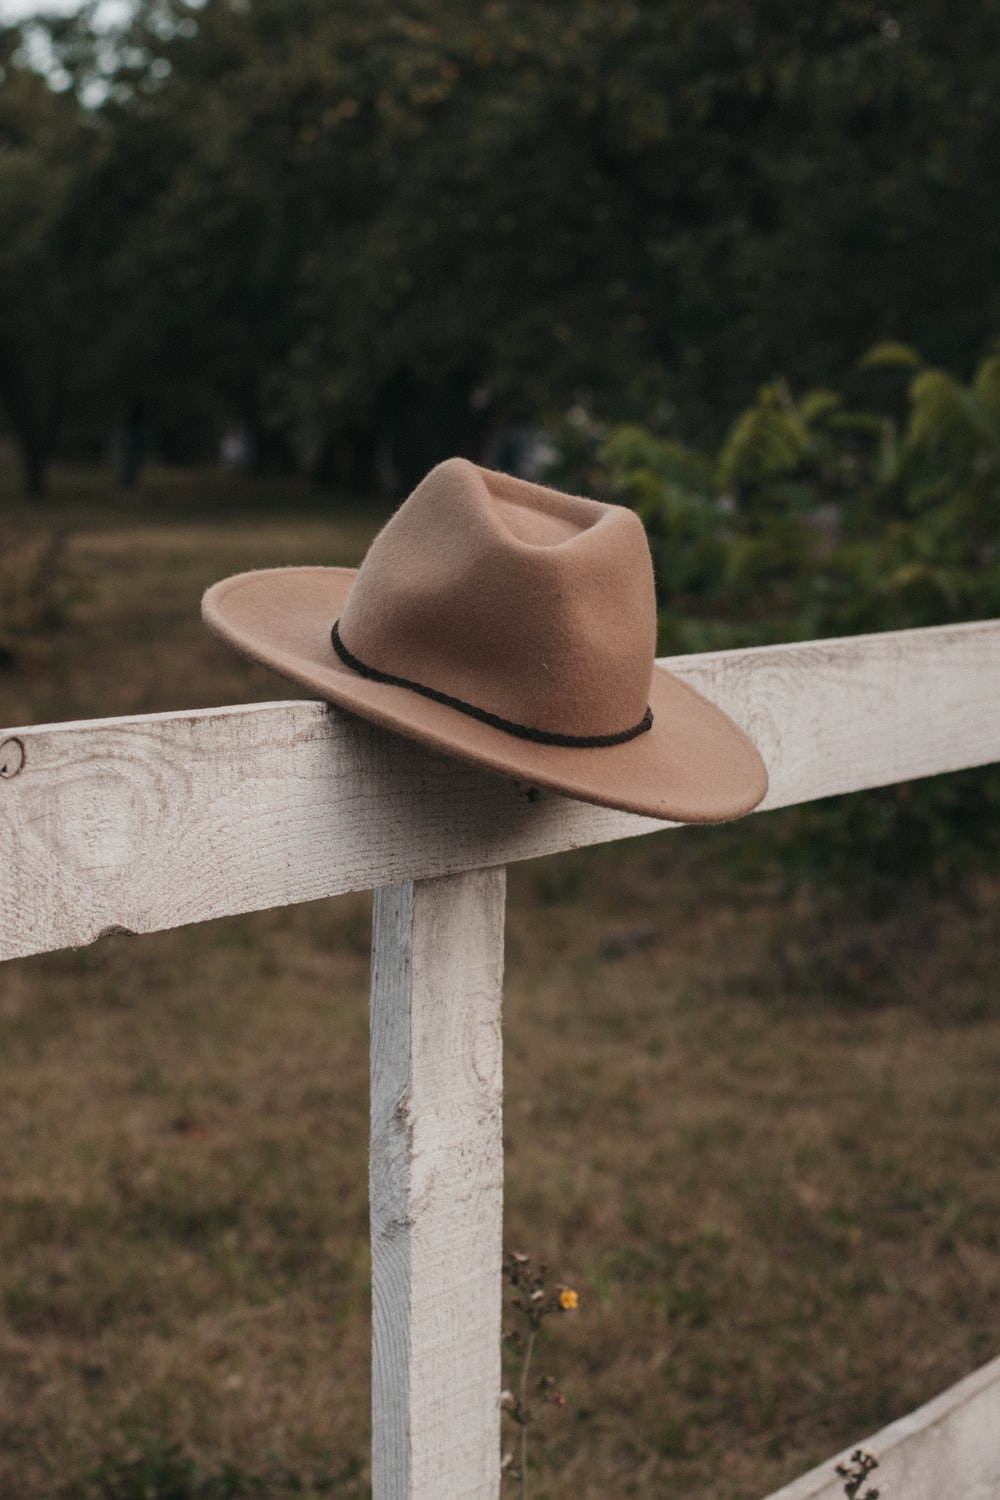 brown cowboy hat on wooden fence